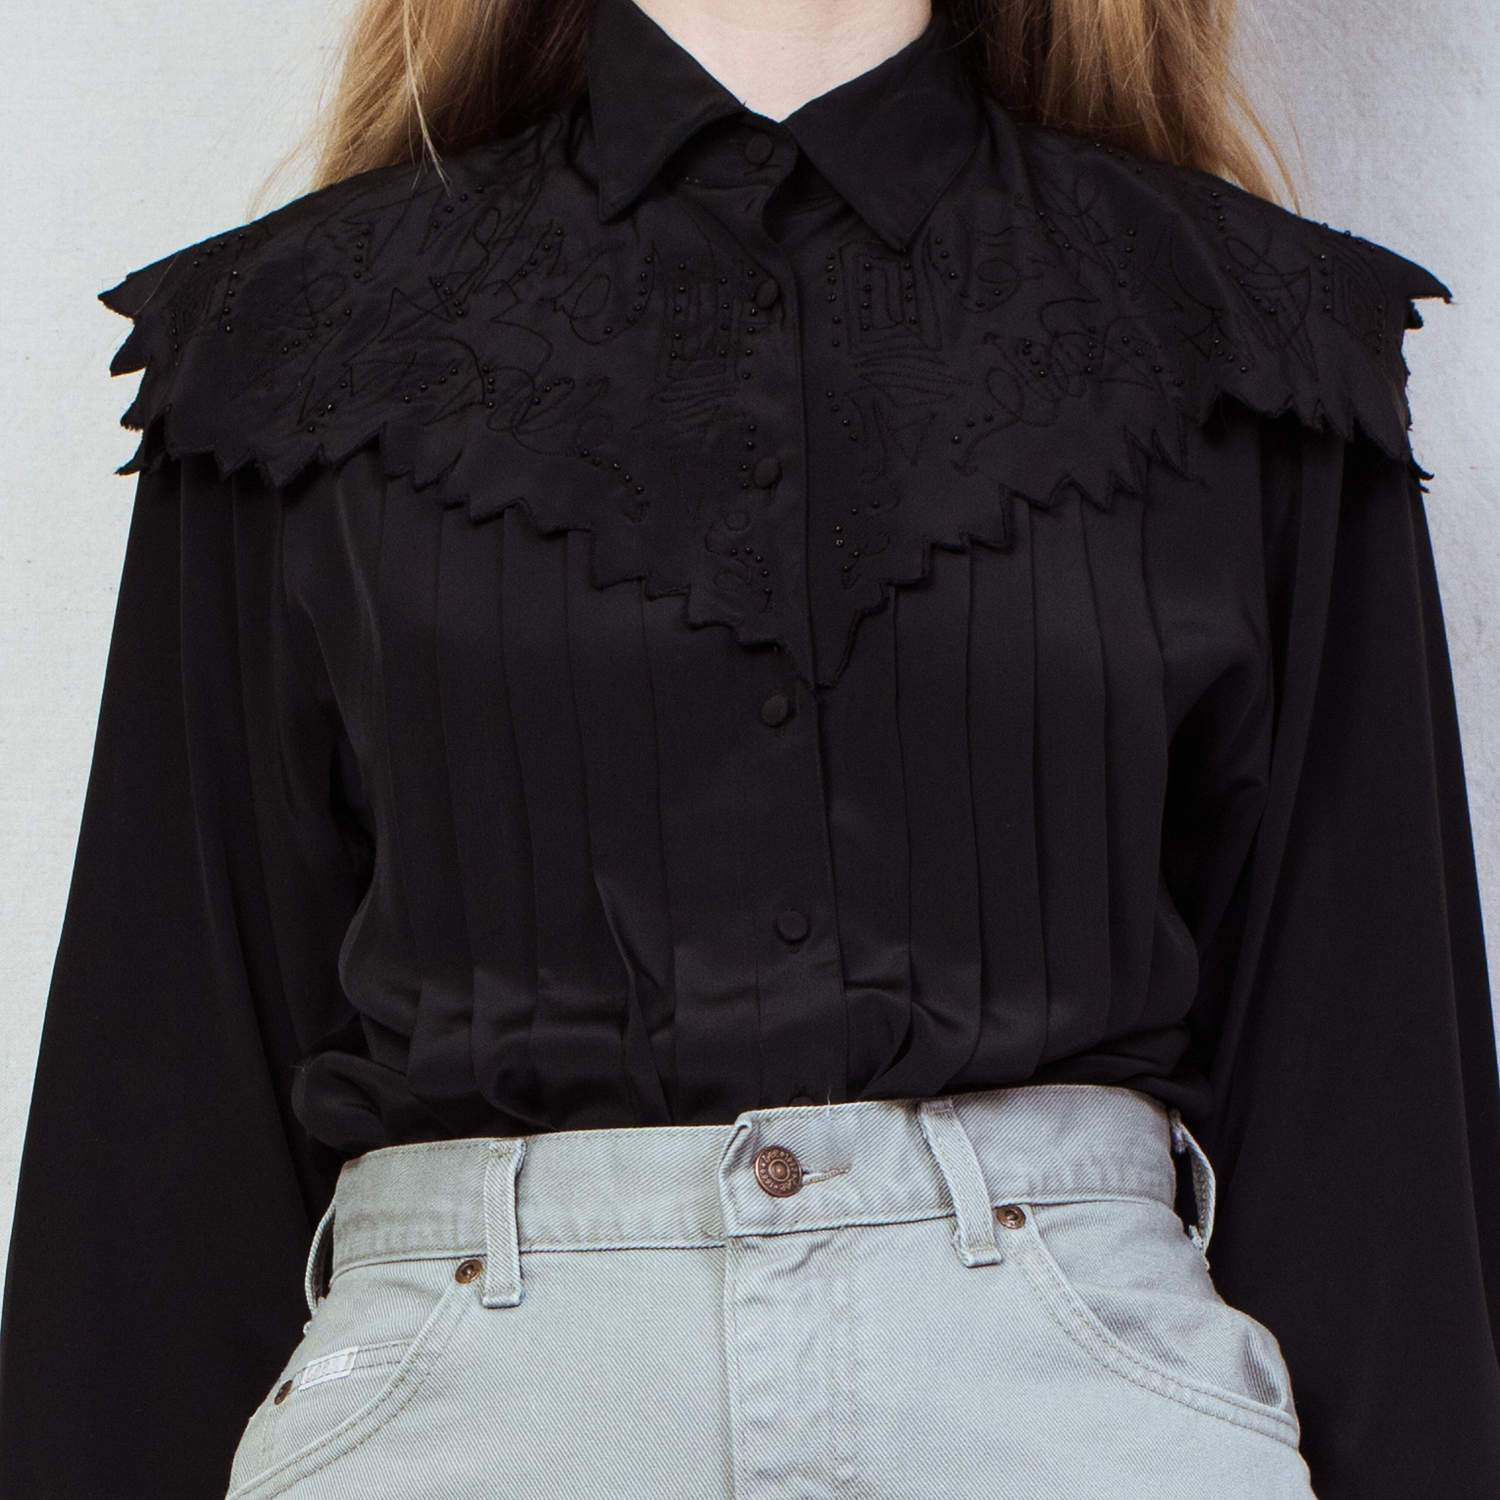 Vintage Black Pleated and Beaded Blouse / S/M - Closed Caption